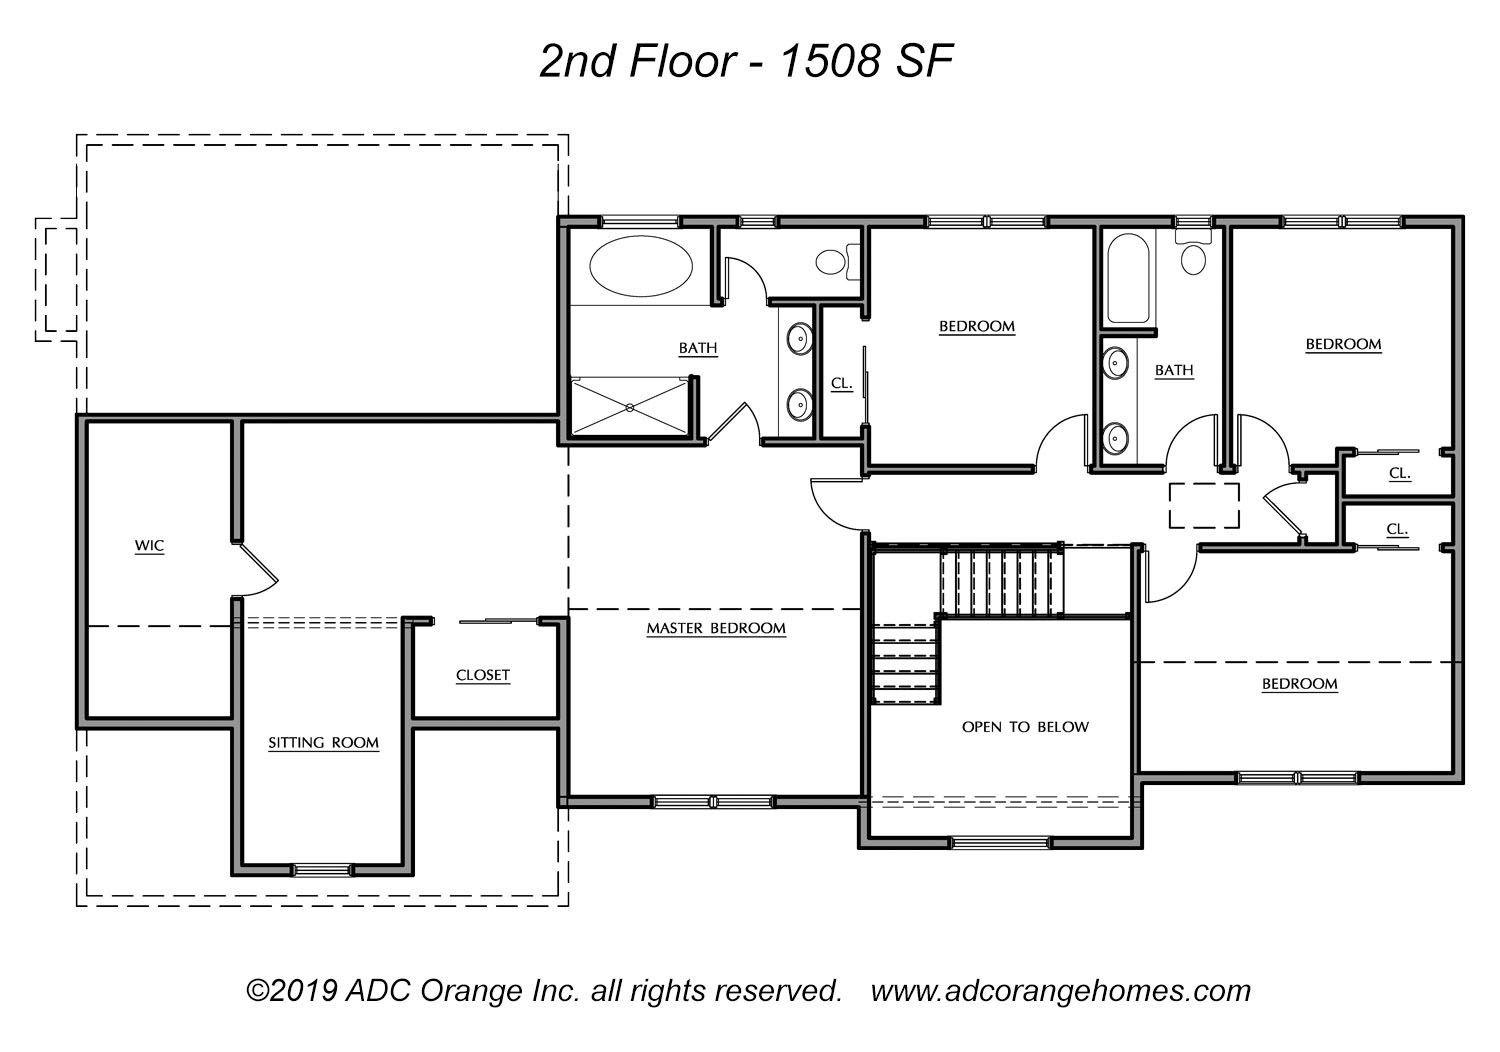 2nd Floor Plan for Carmel - New Home in Orange County, New York